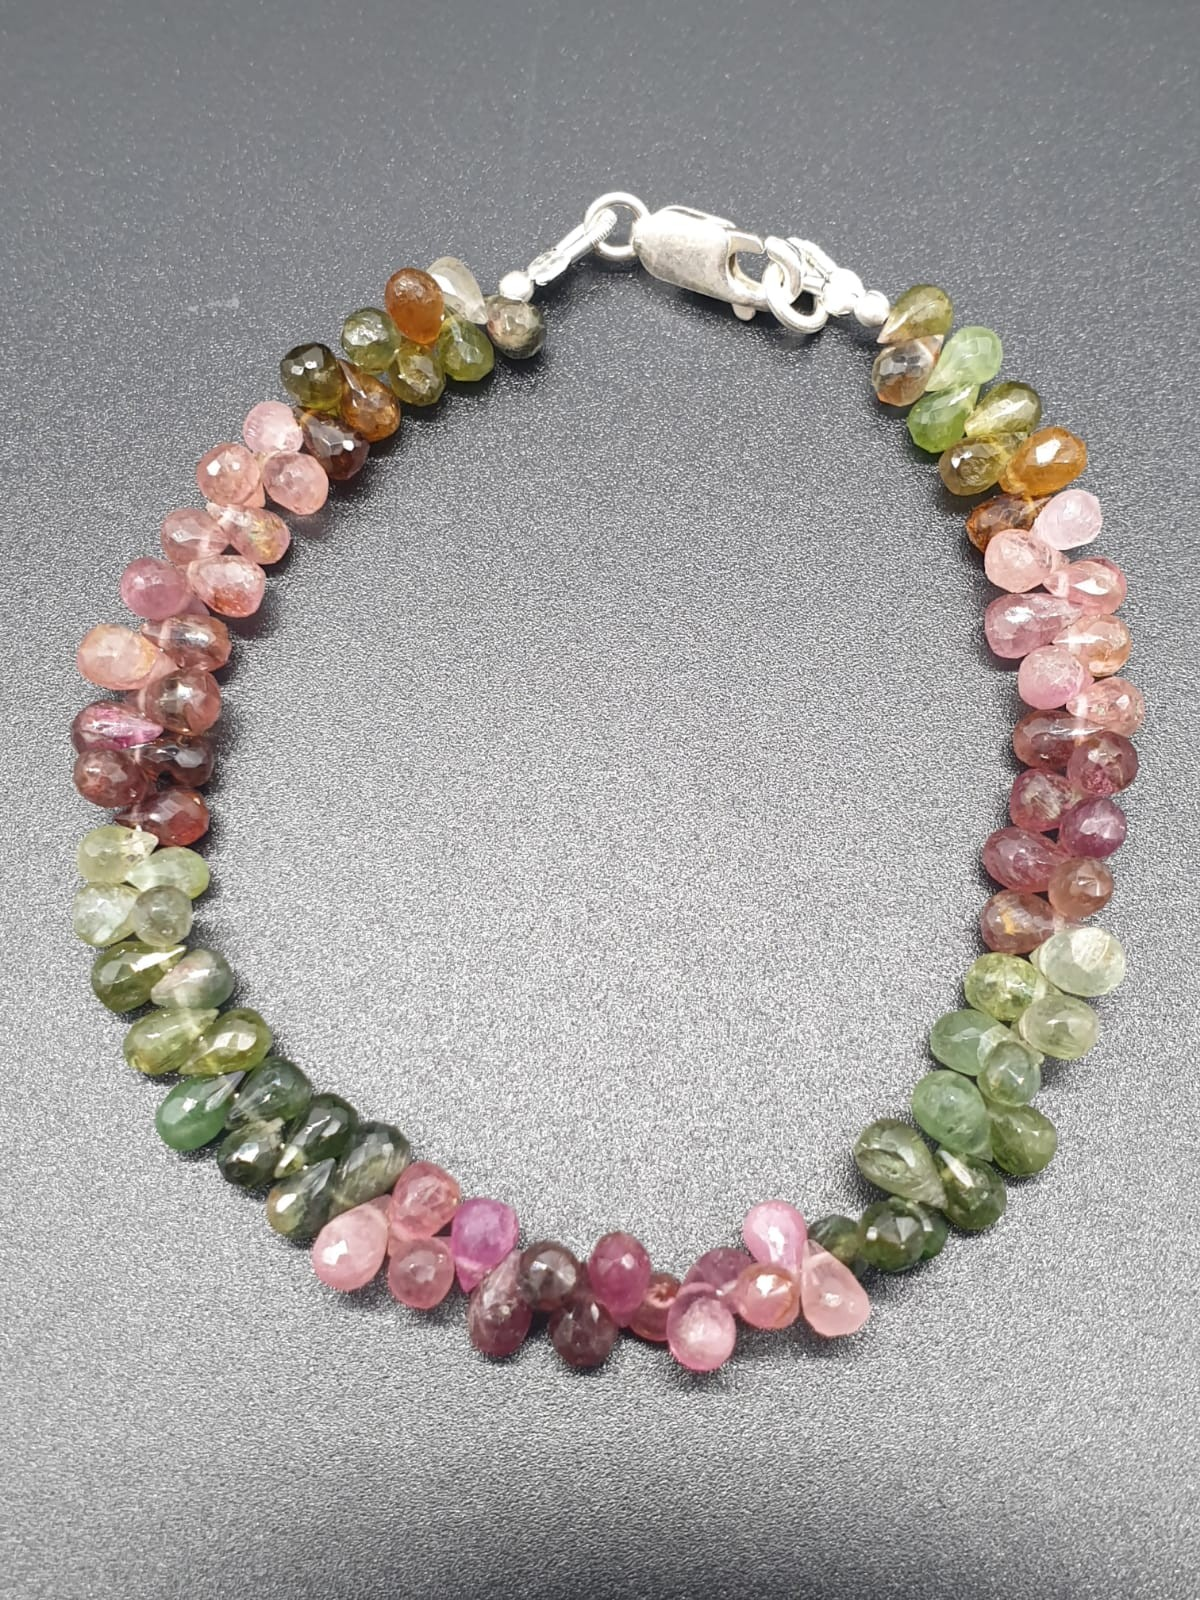 Single Row 3mm Tourmaline Necklace With Matching Tourmaline Drops Bracelet and 925 silver Clasp - Image 2 of 8